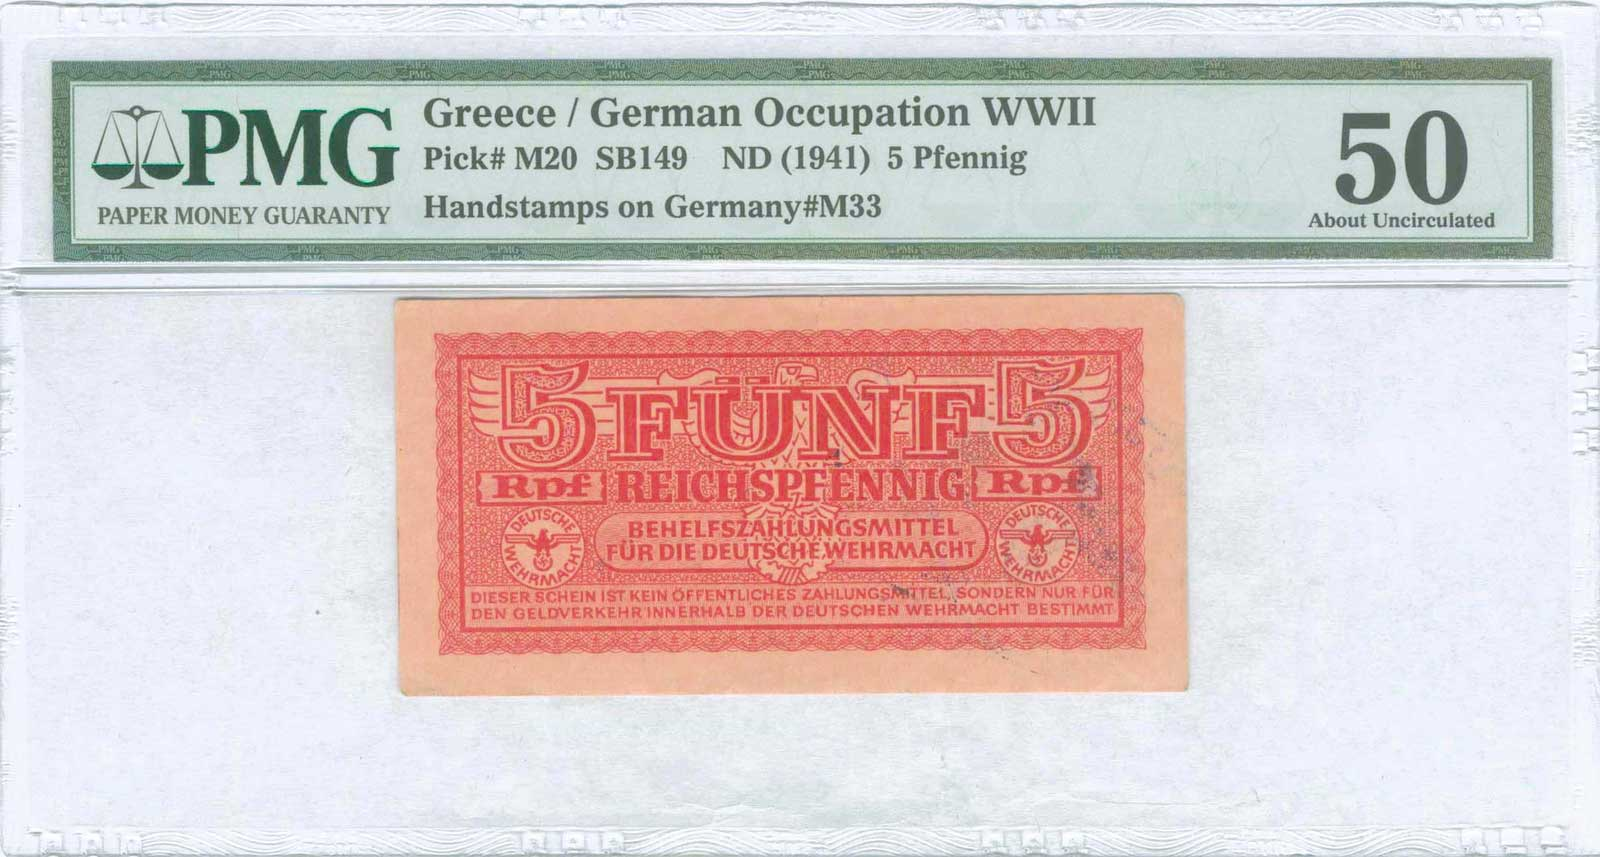 Lot 9400 - GREECE-  PAPER MONEY - BANKNOTES german occupation wwii -  A. Karamitsos Public & LIVE Bid Auction 610 Coins, Medals & Banknotes